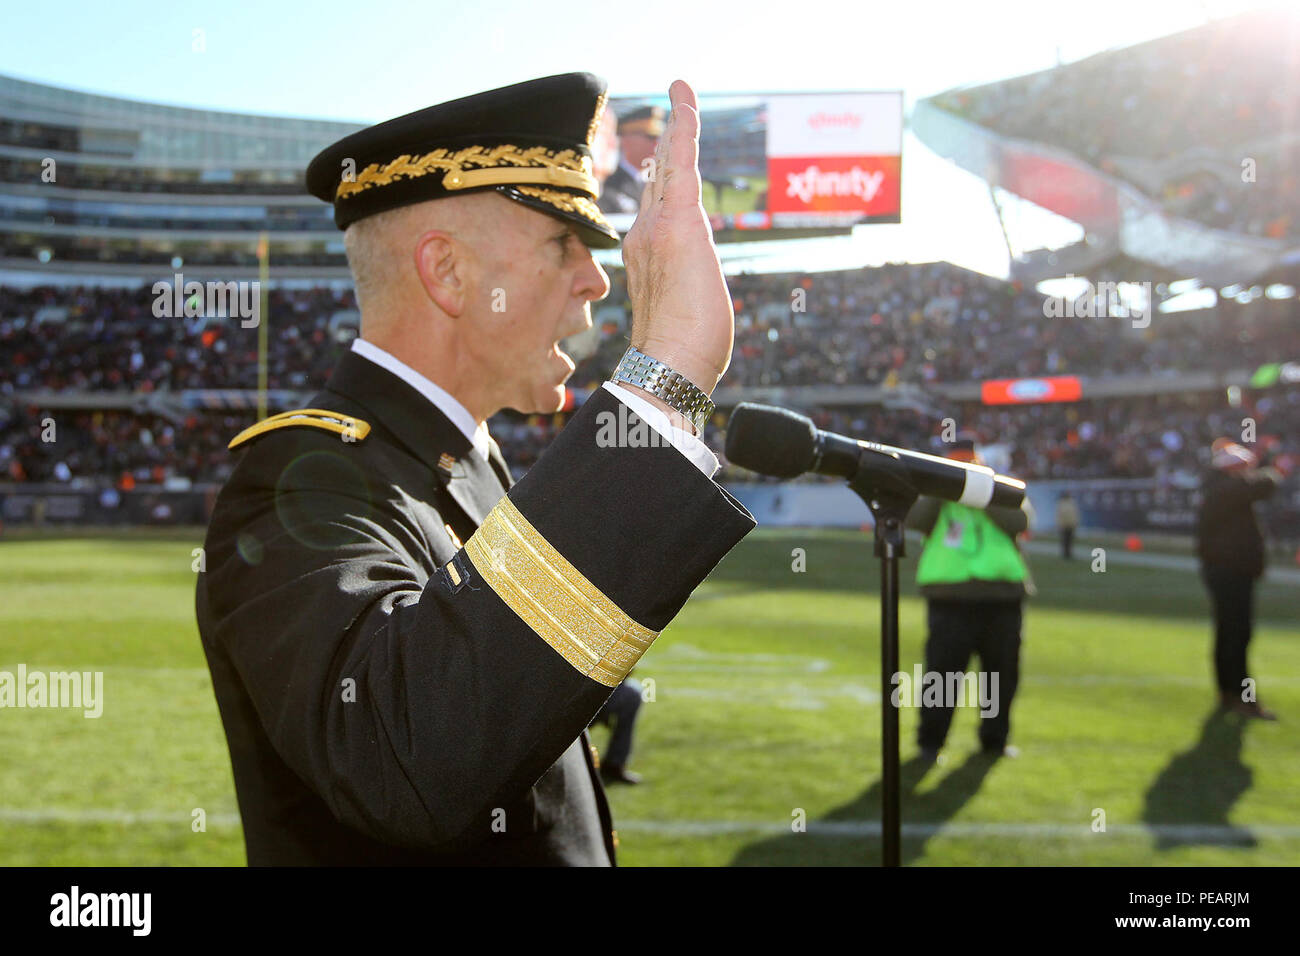 Enlistment Office High Resolution Stock Photography And Images Alamy